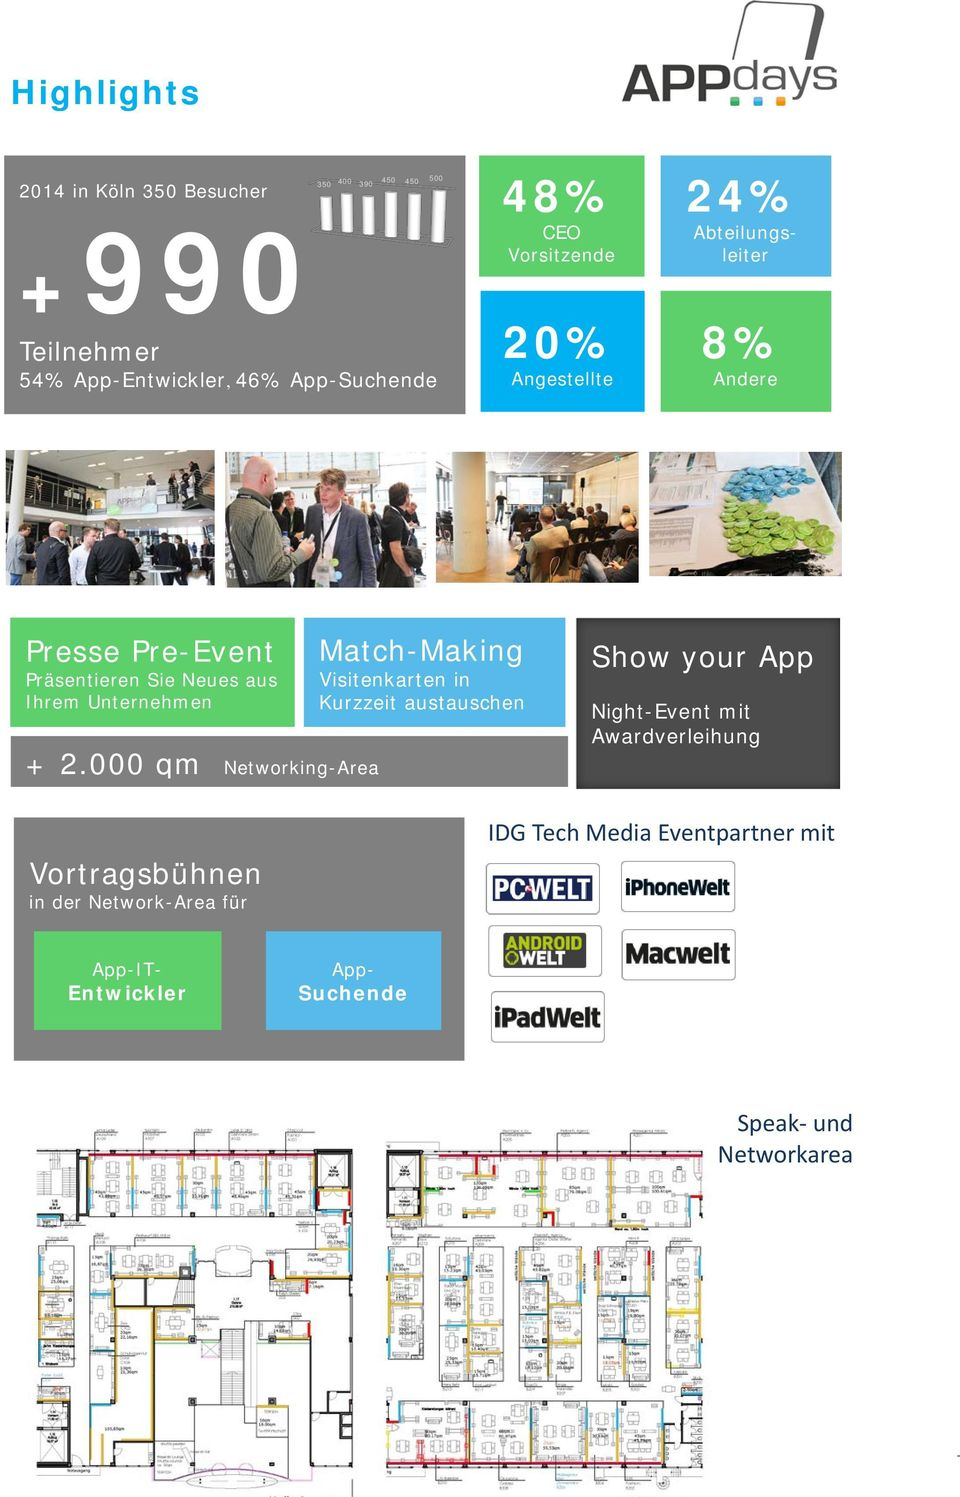 2.000 qm Networking-Area Match-Making Visitenkarten in Kurzzeit austauschen Show your App Night-Event mit Awardverleihung